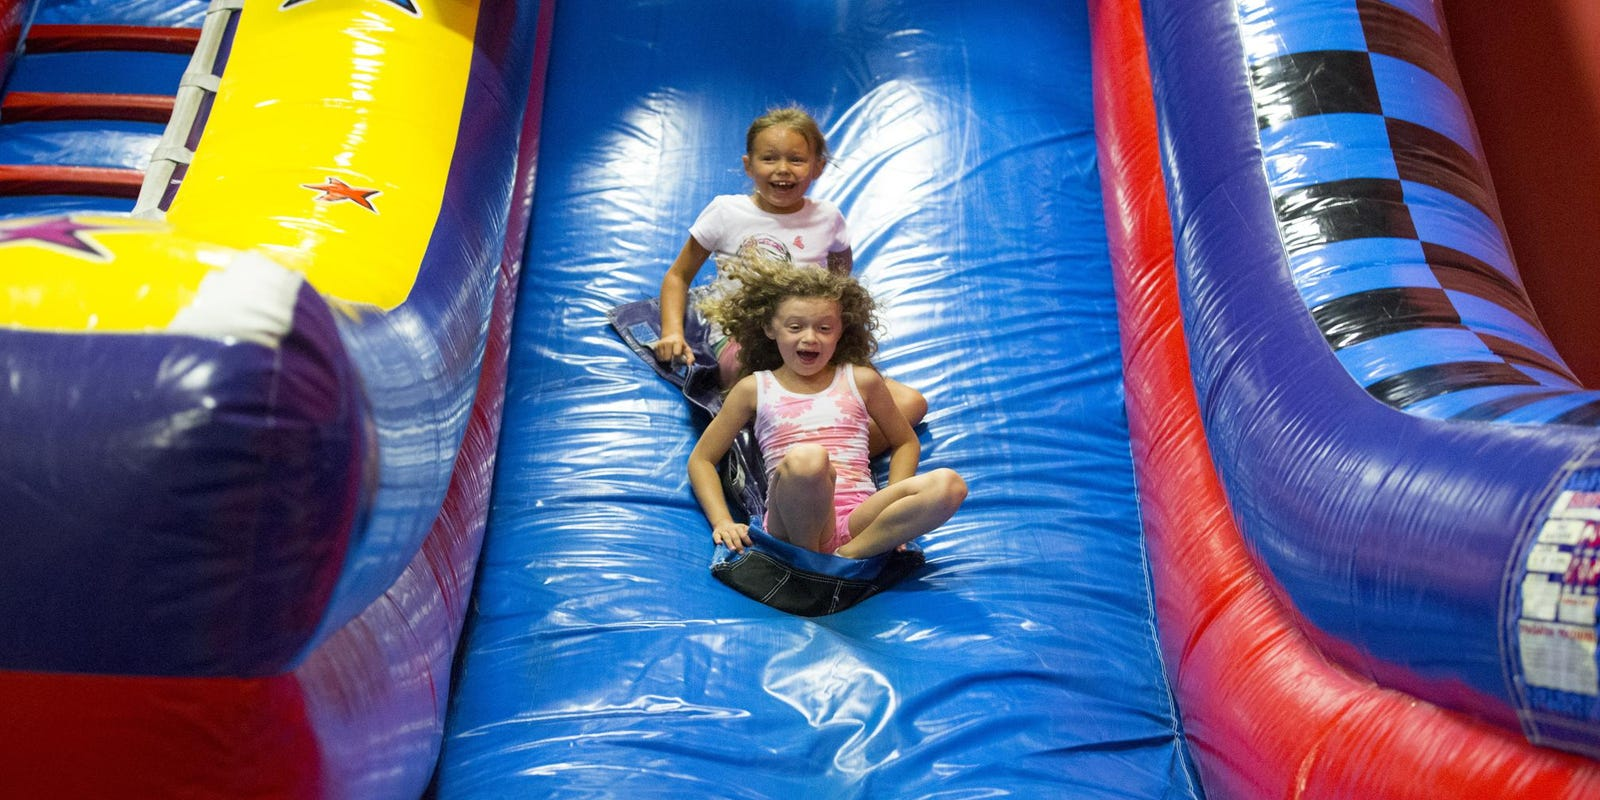 785dcb245da2 Jump and soar high  9 trampoline parks and bounce houses